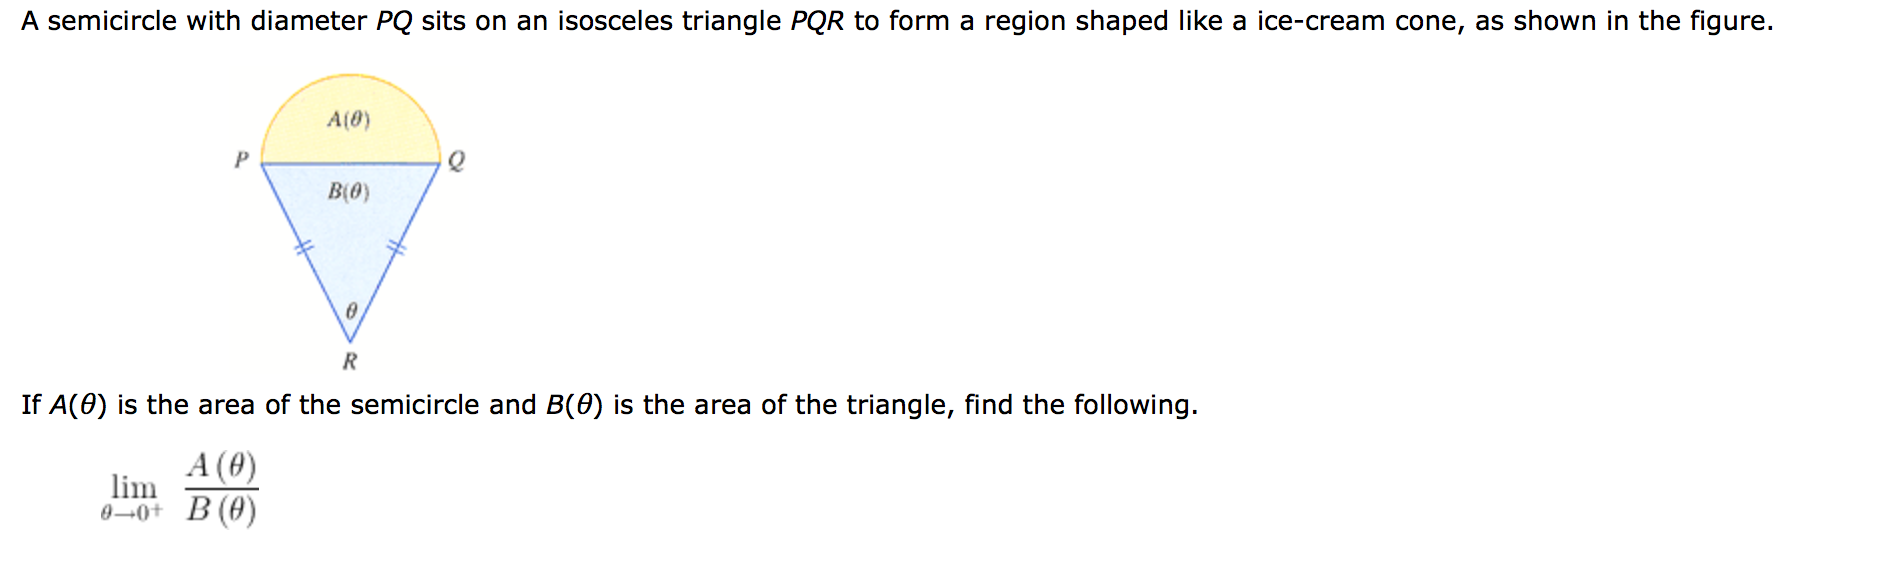 Image For A Semicircle With Diameter Pq Sits On An Isosceles Triangle Pqr  To Form A